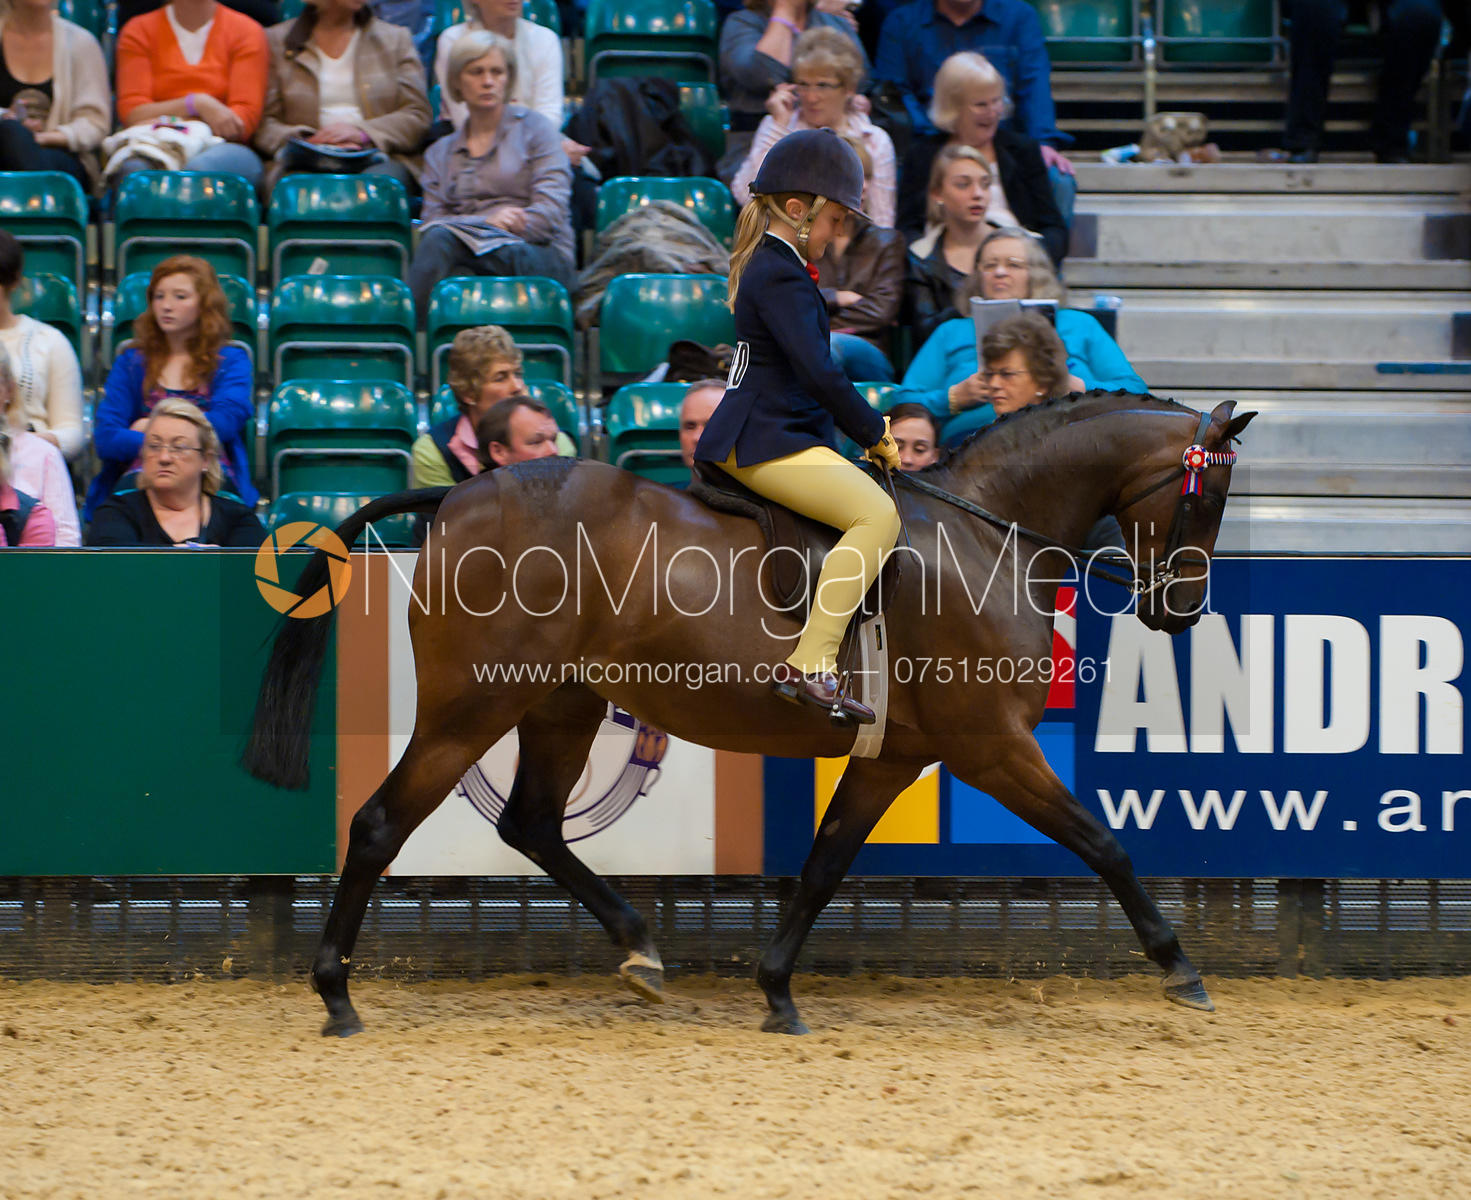 Charlotte Morgan Riding Pony of the Year, Horse of the Year Show 2010